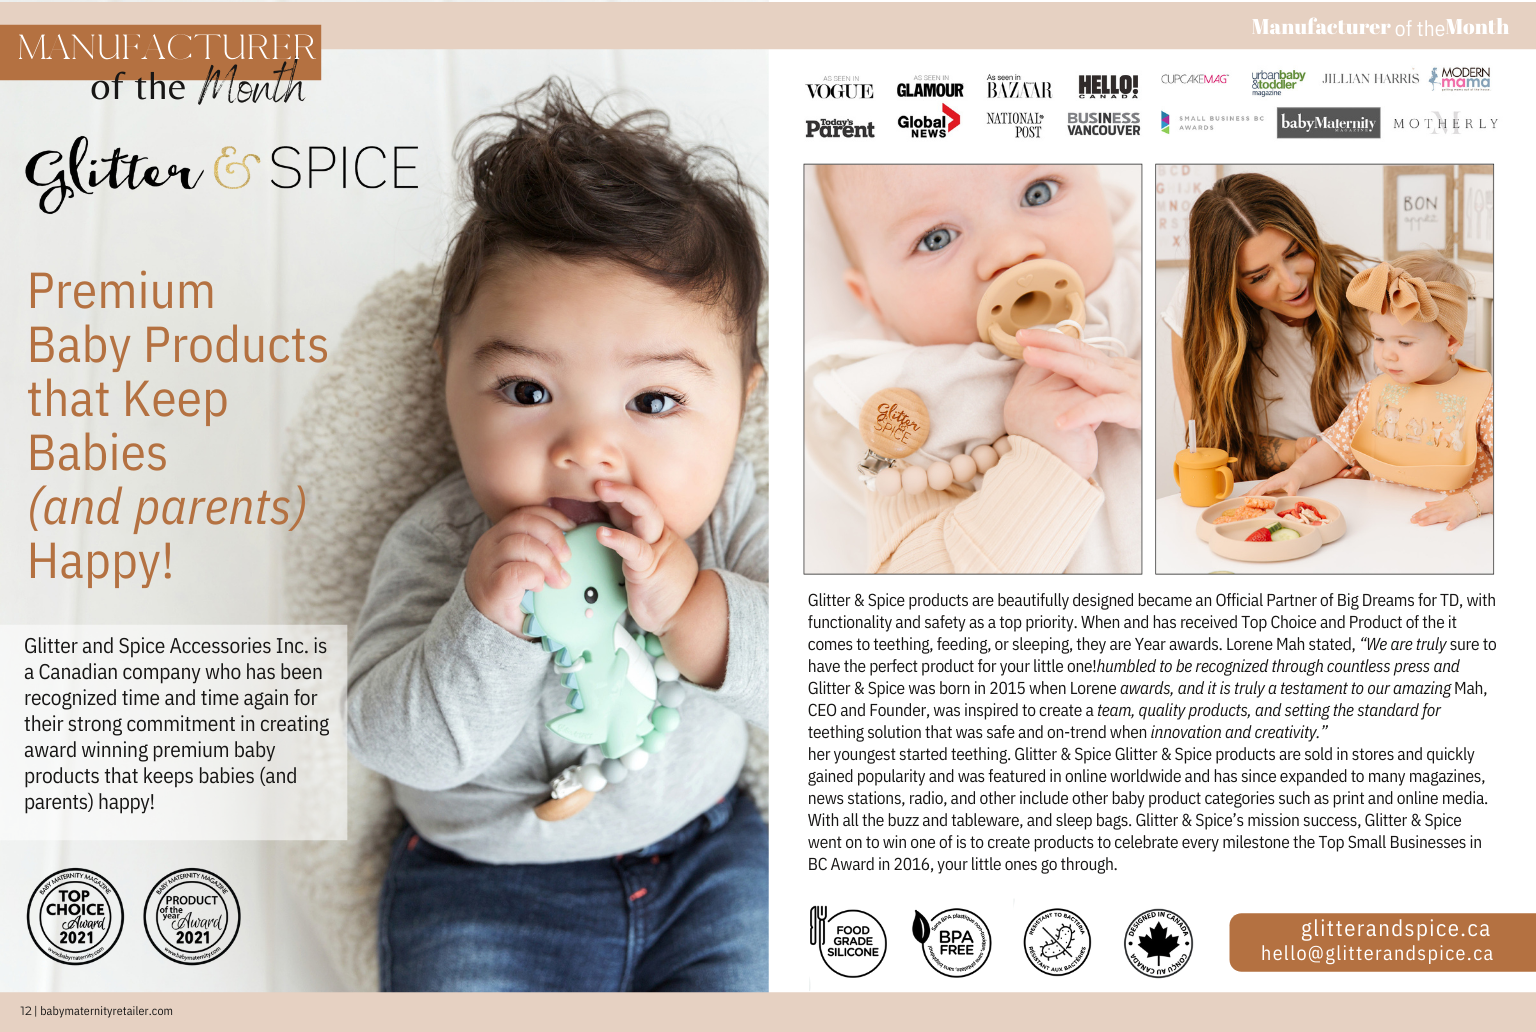 Glitter and Spice Manufacturer of the Month